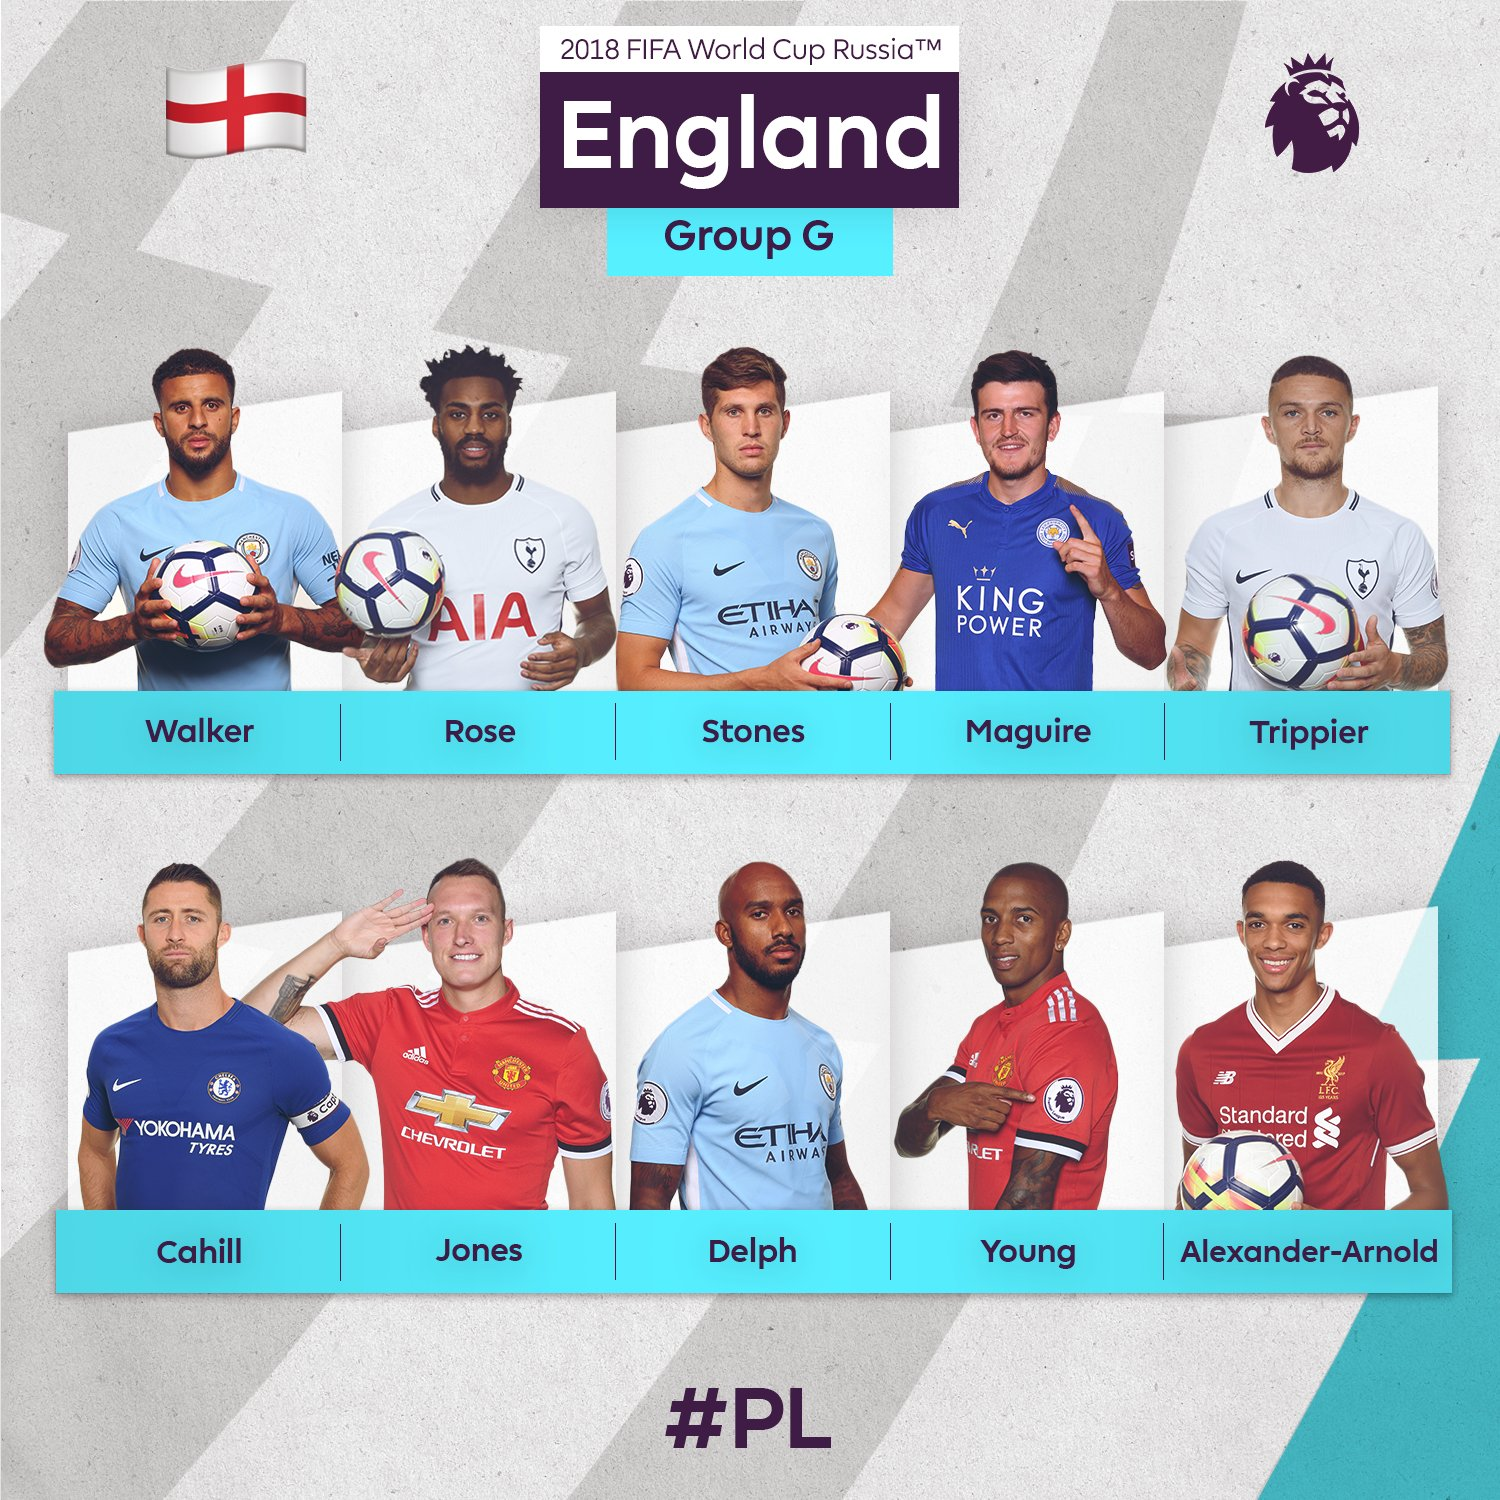 Plenty of #PL players on show in the next #WorldCup match...  #TUNENG #ENG https://t.co/T4KZMCue2M